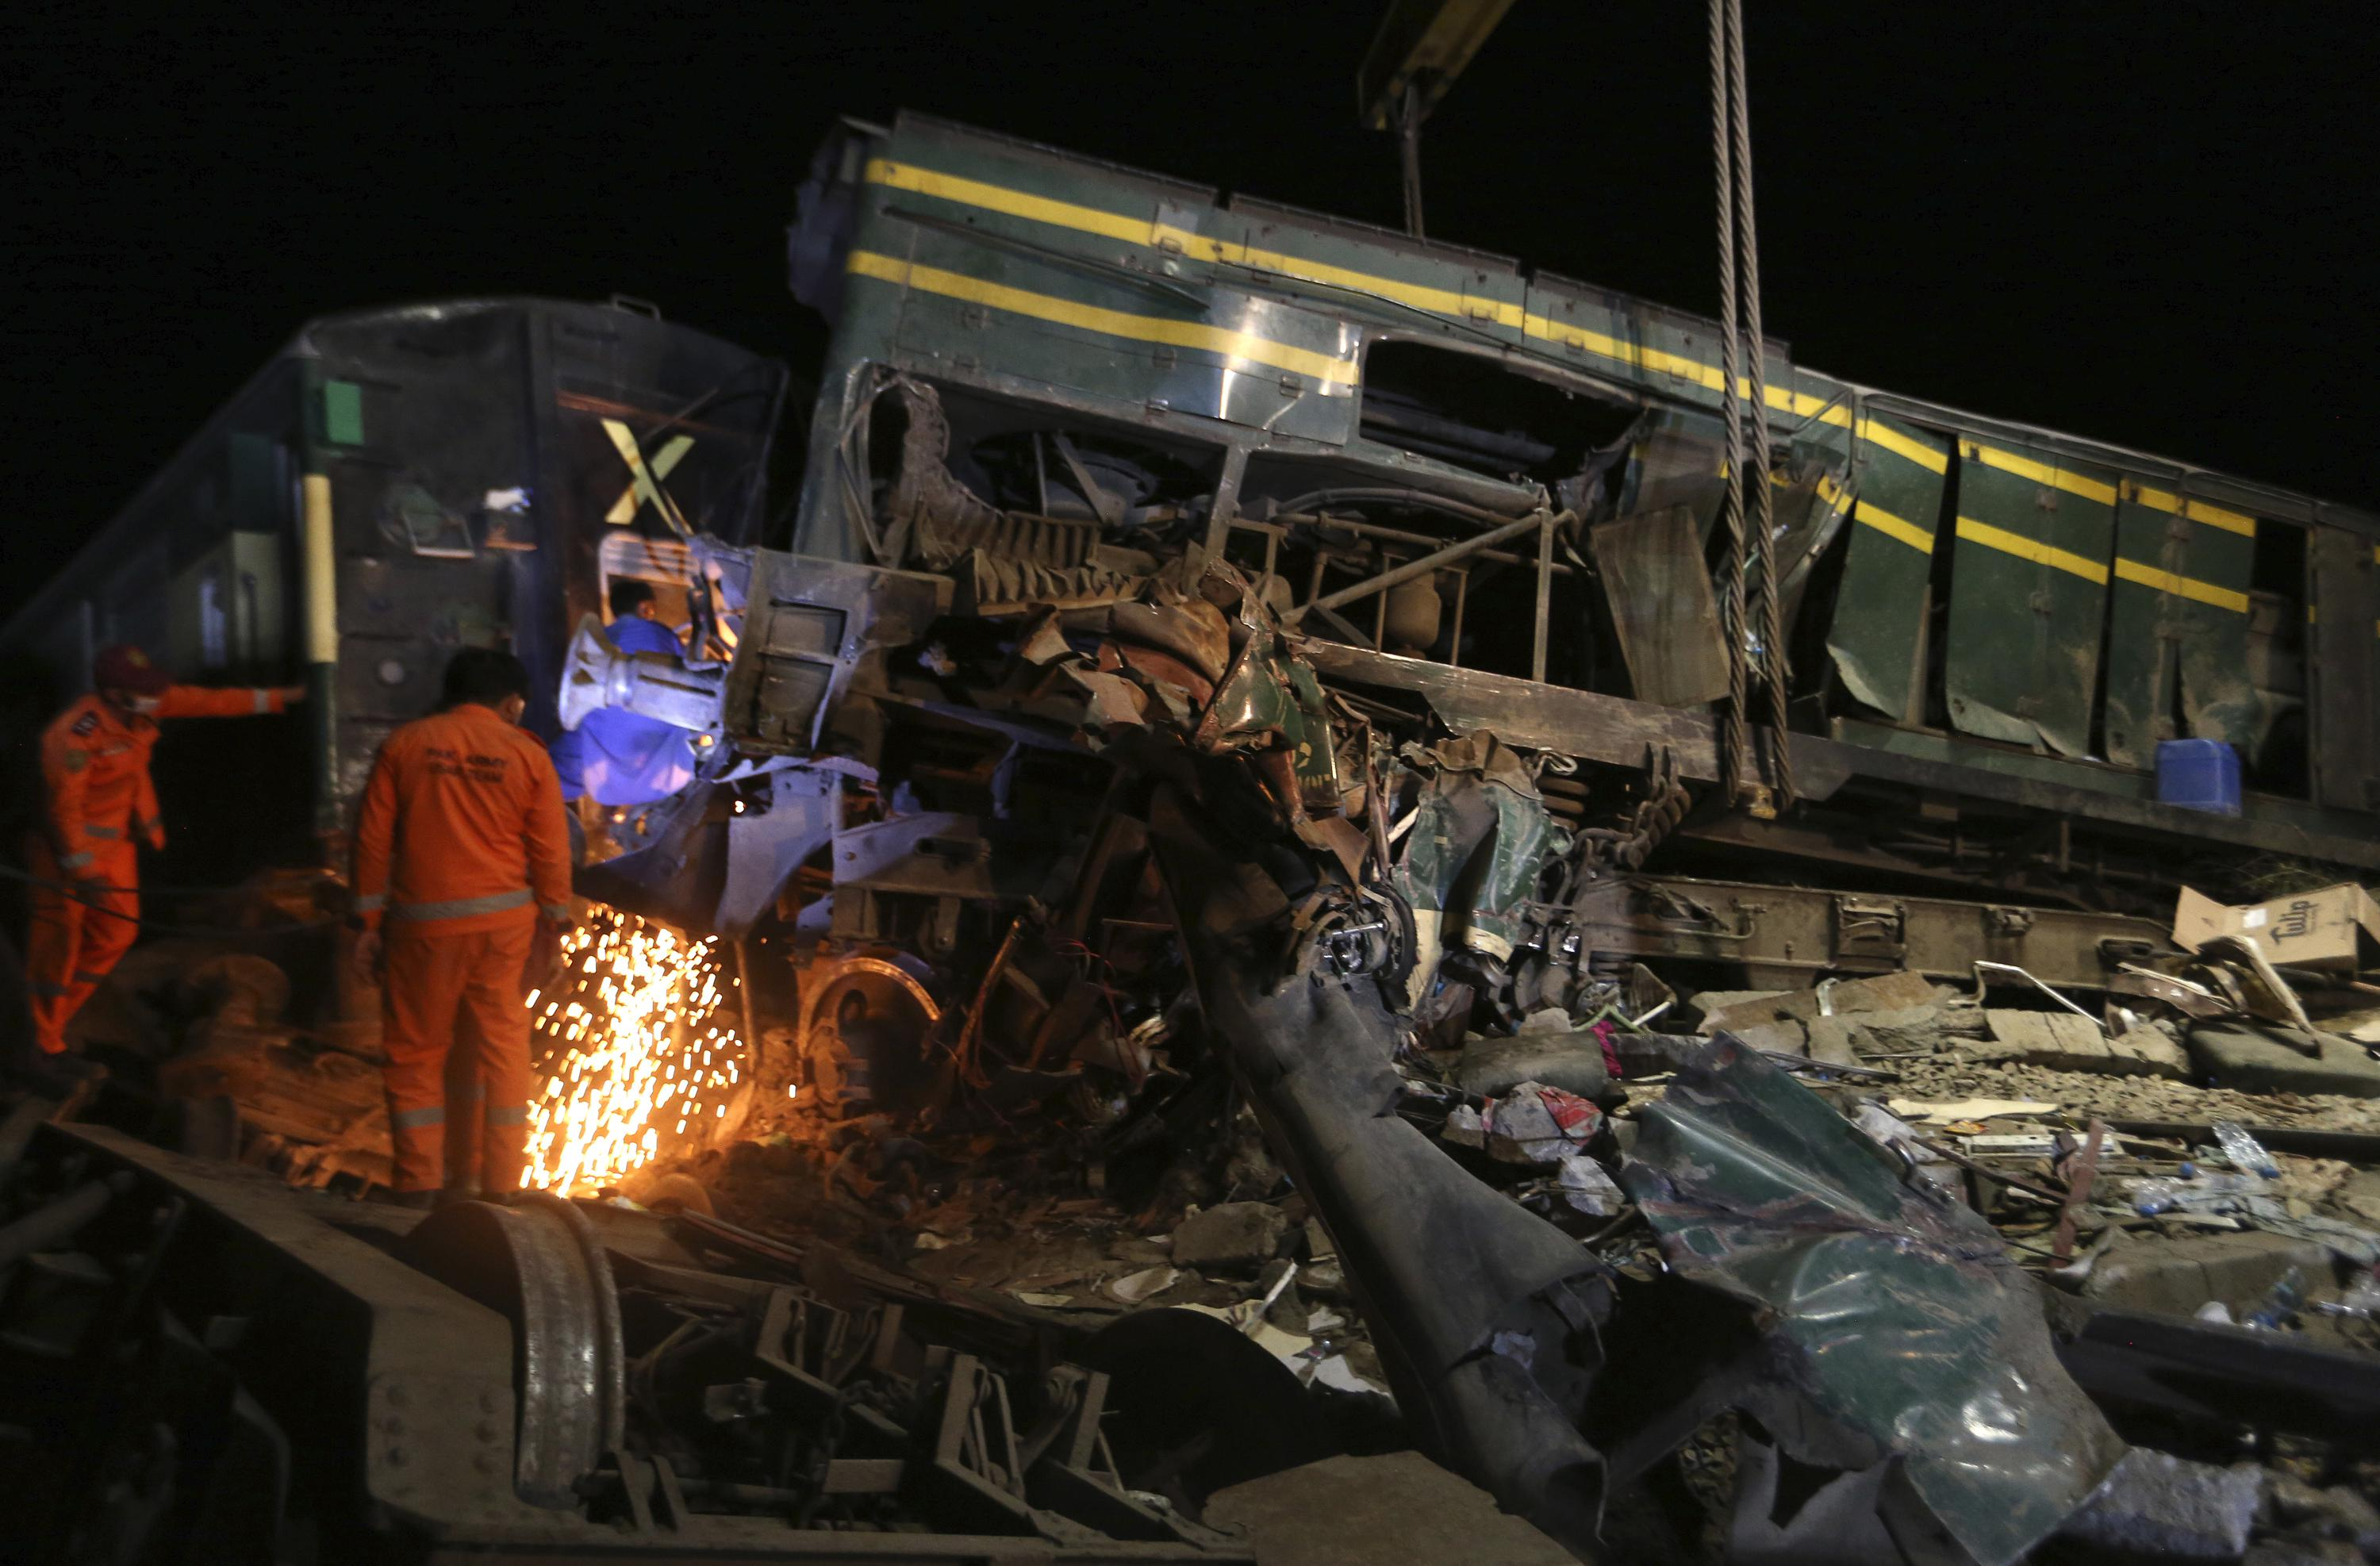 Official: Death toll rises to 63 in Pakistan train collision